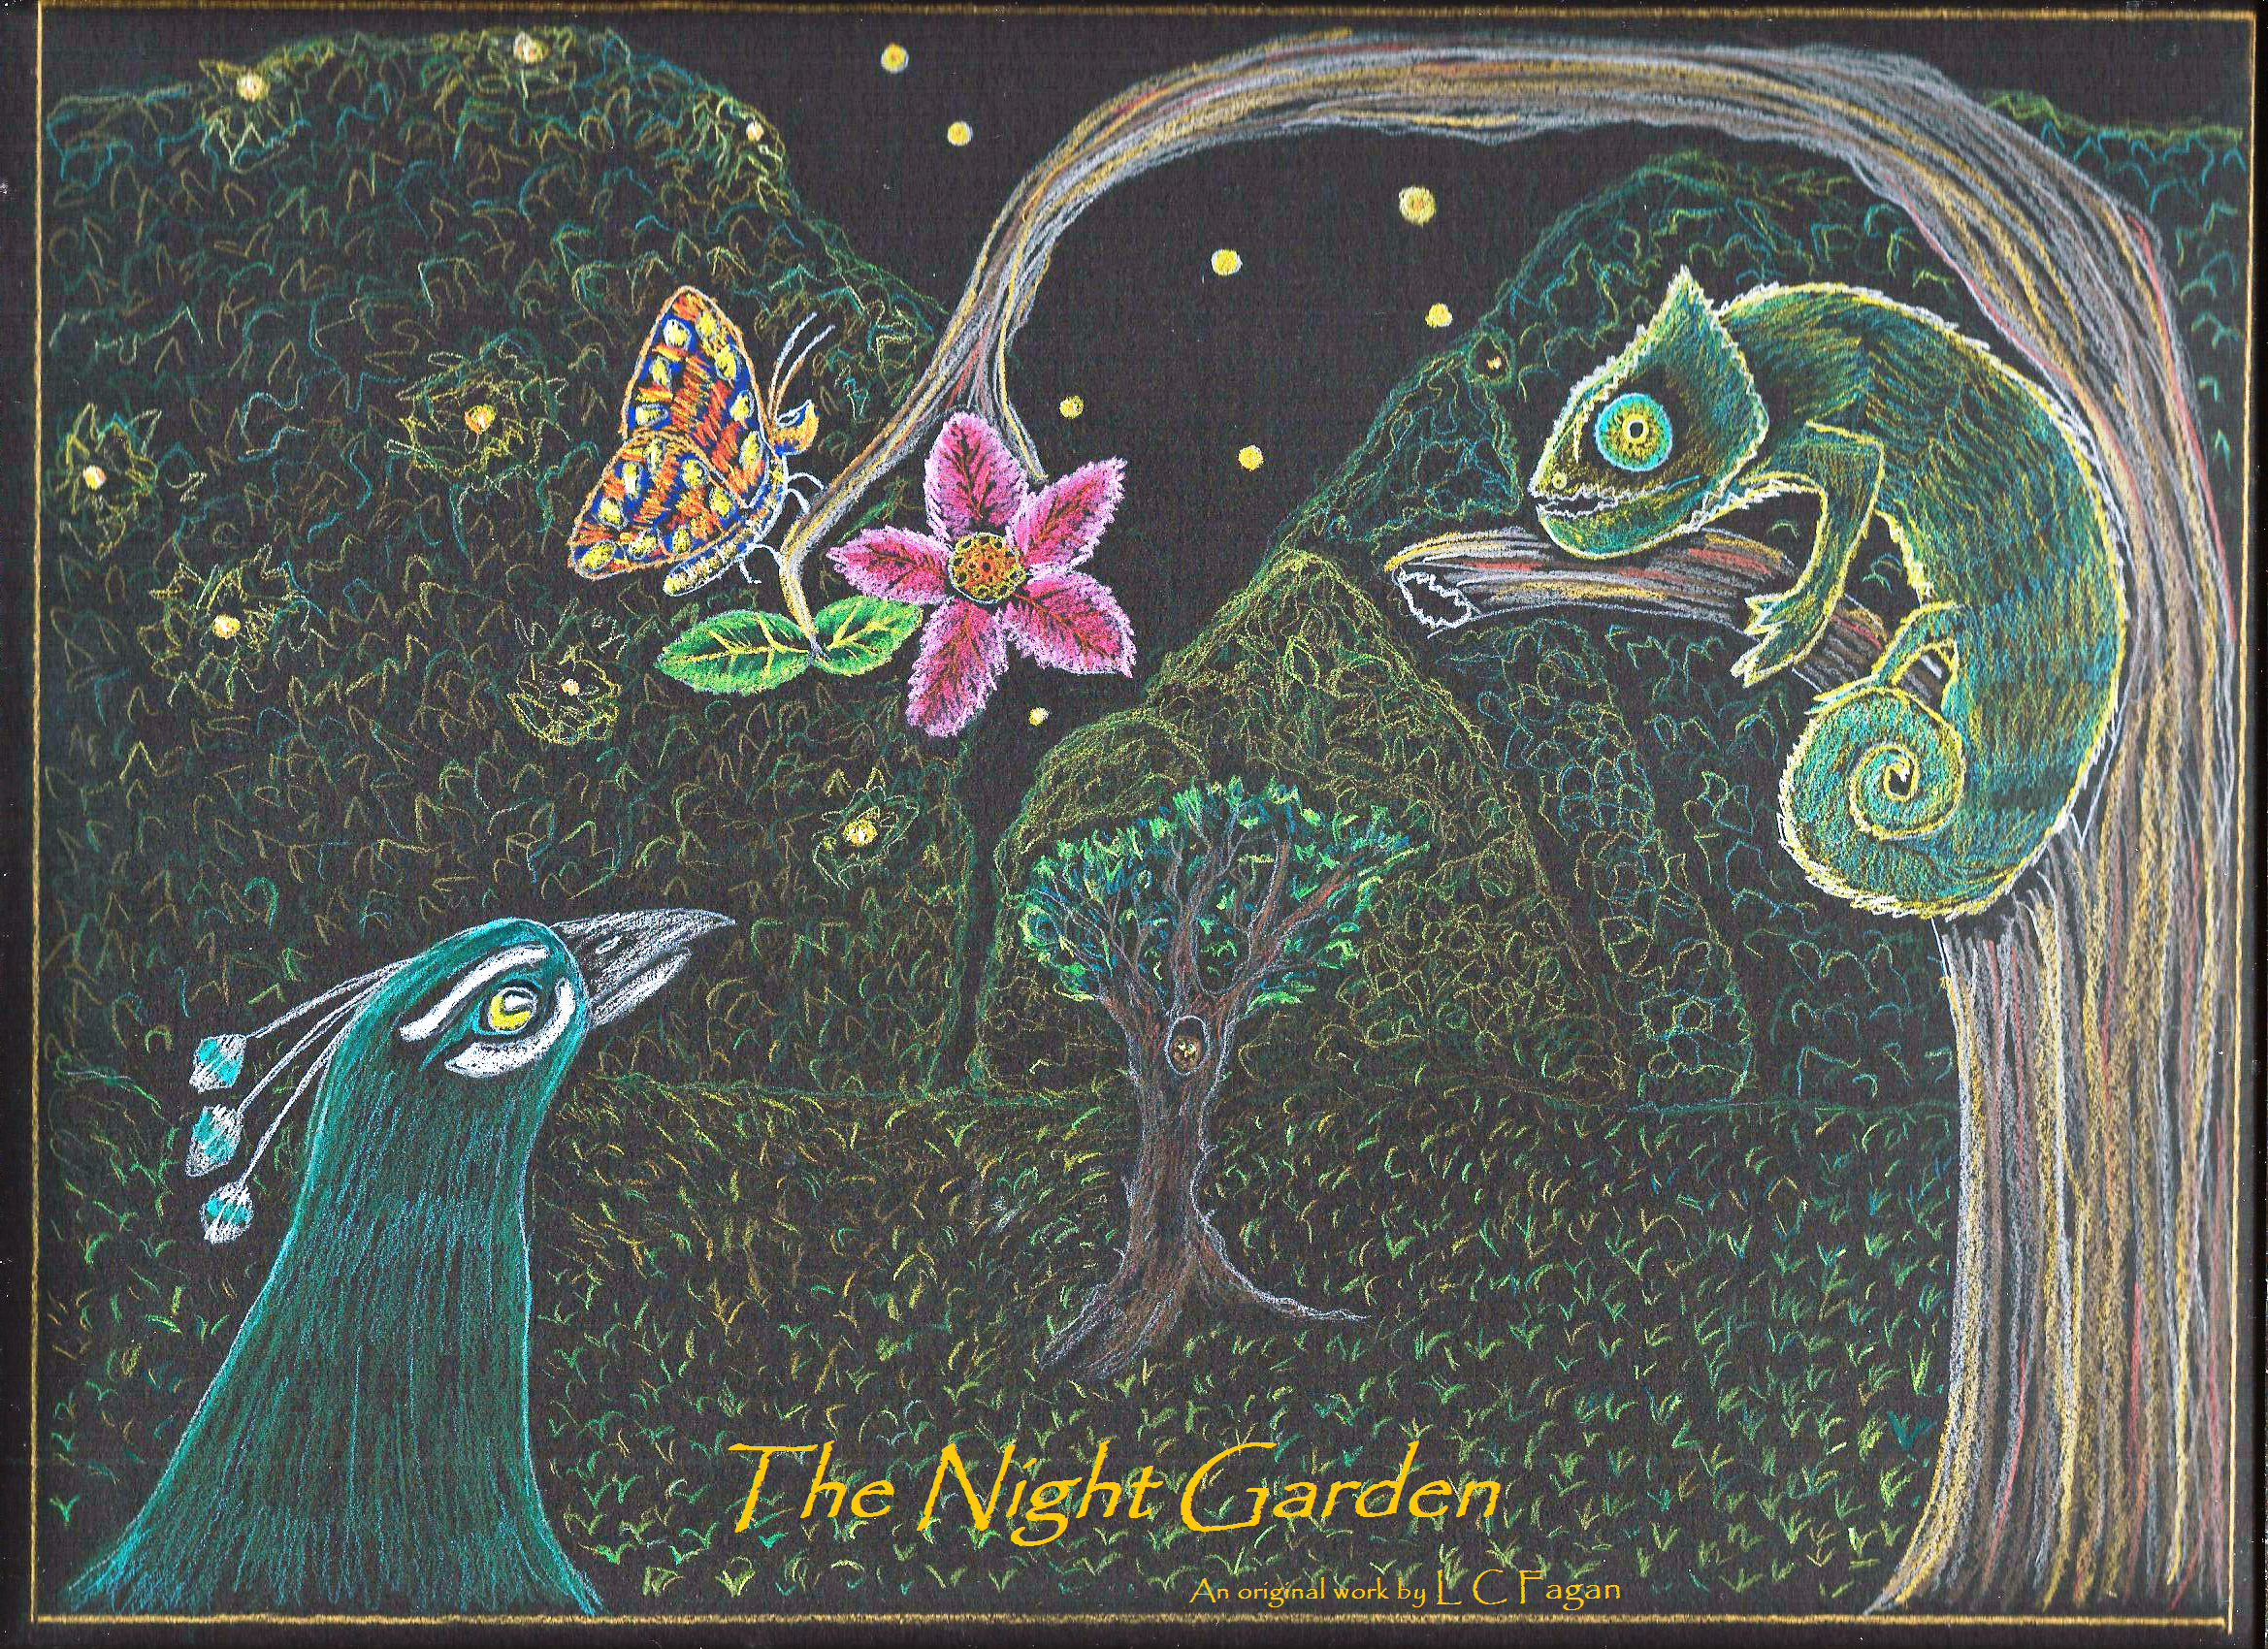 A in the night garden 3.13.20 - to use